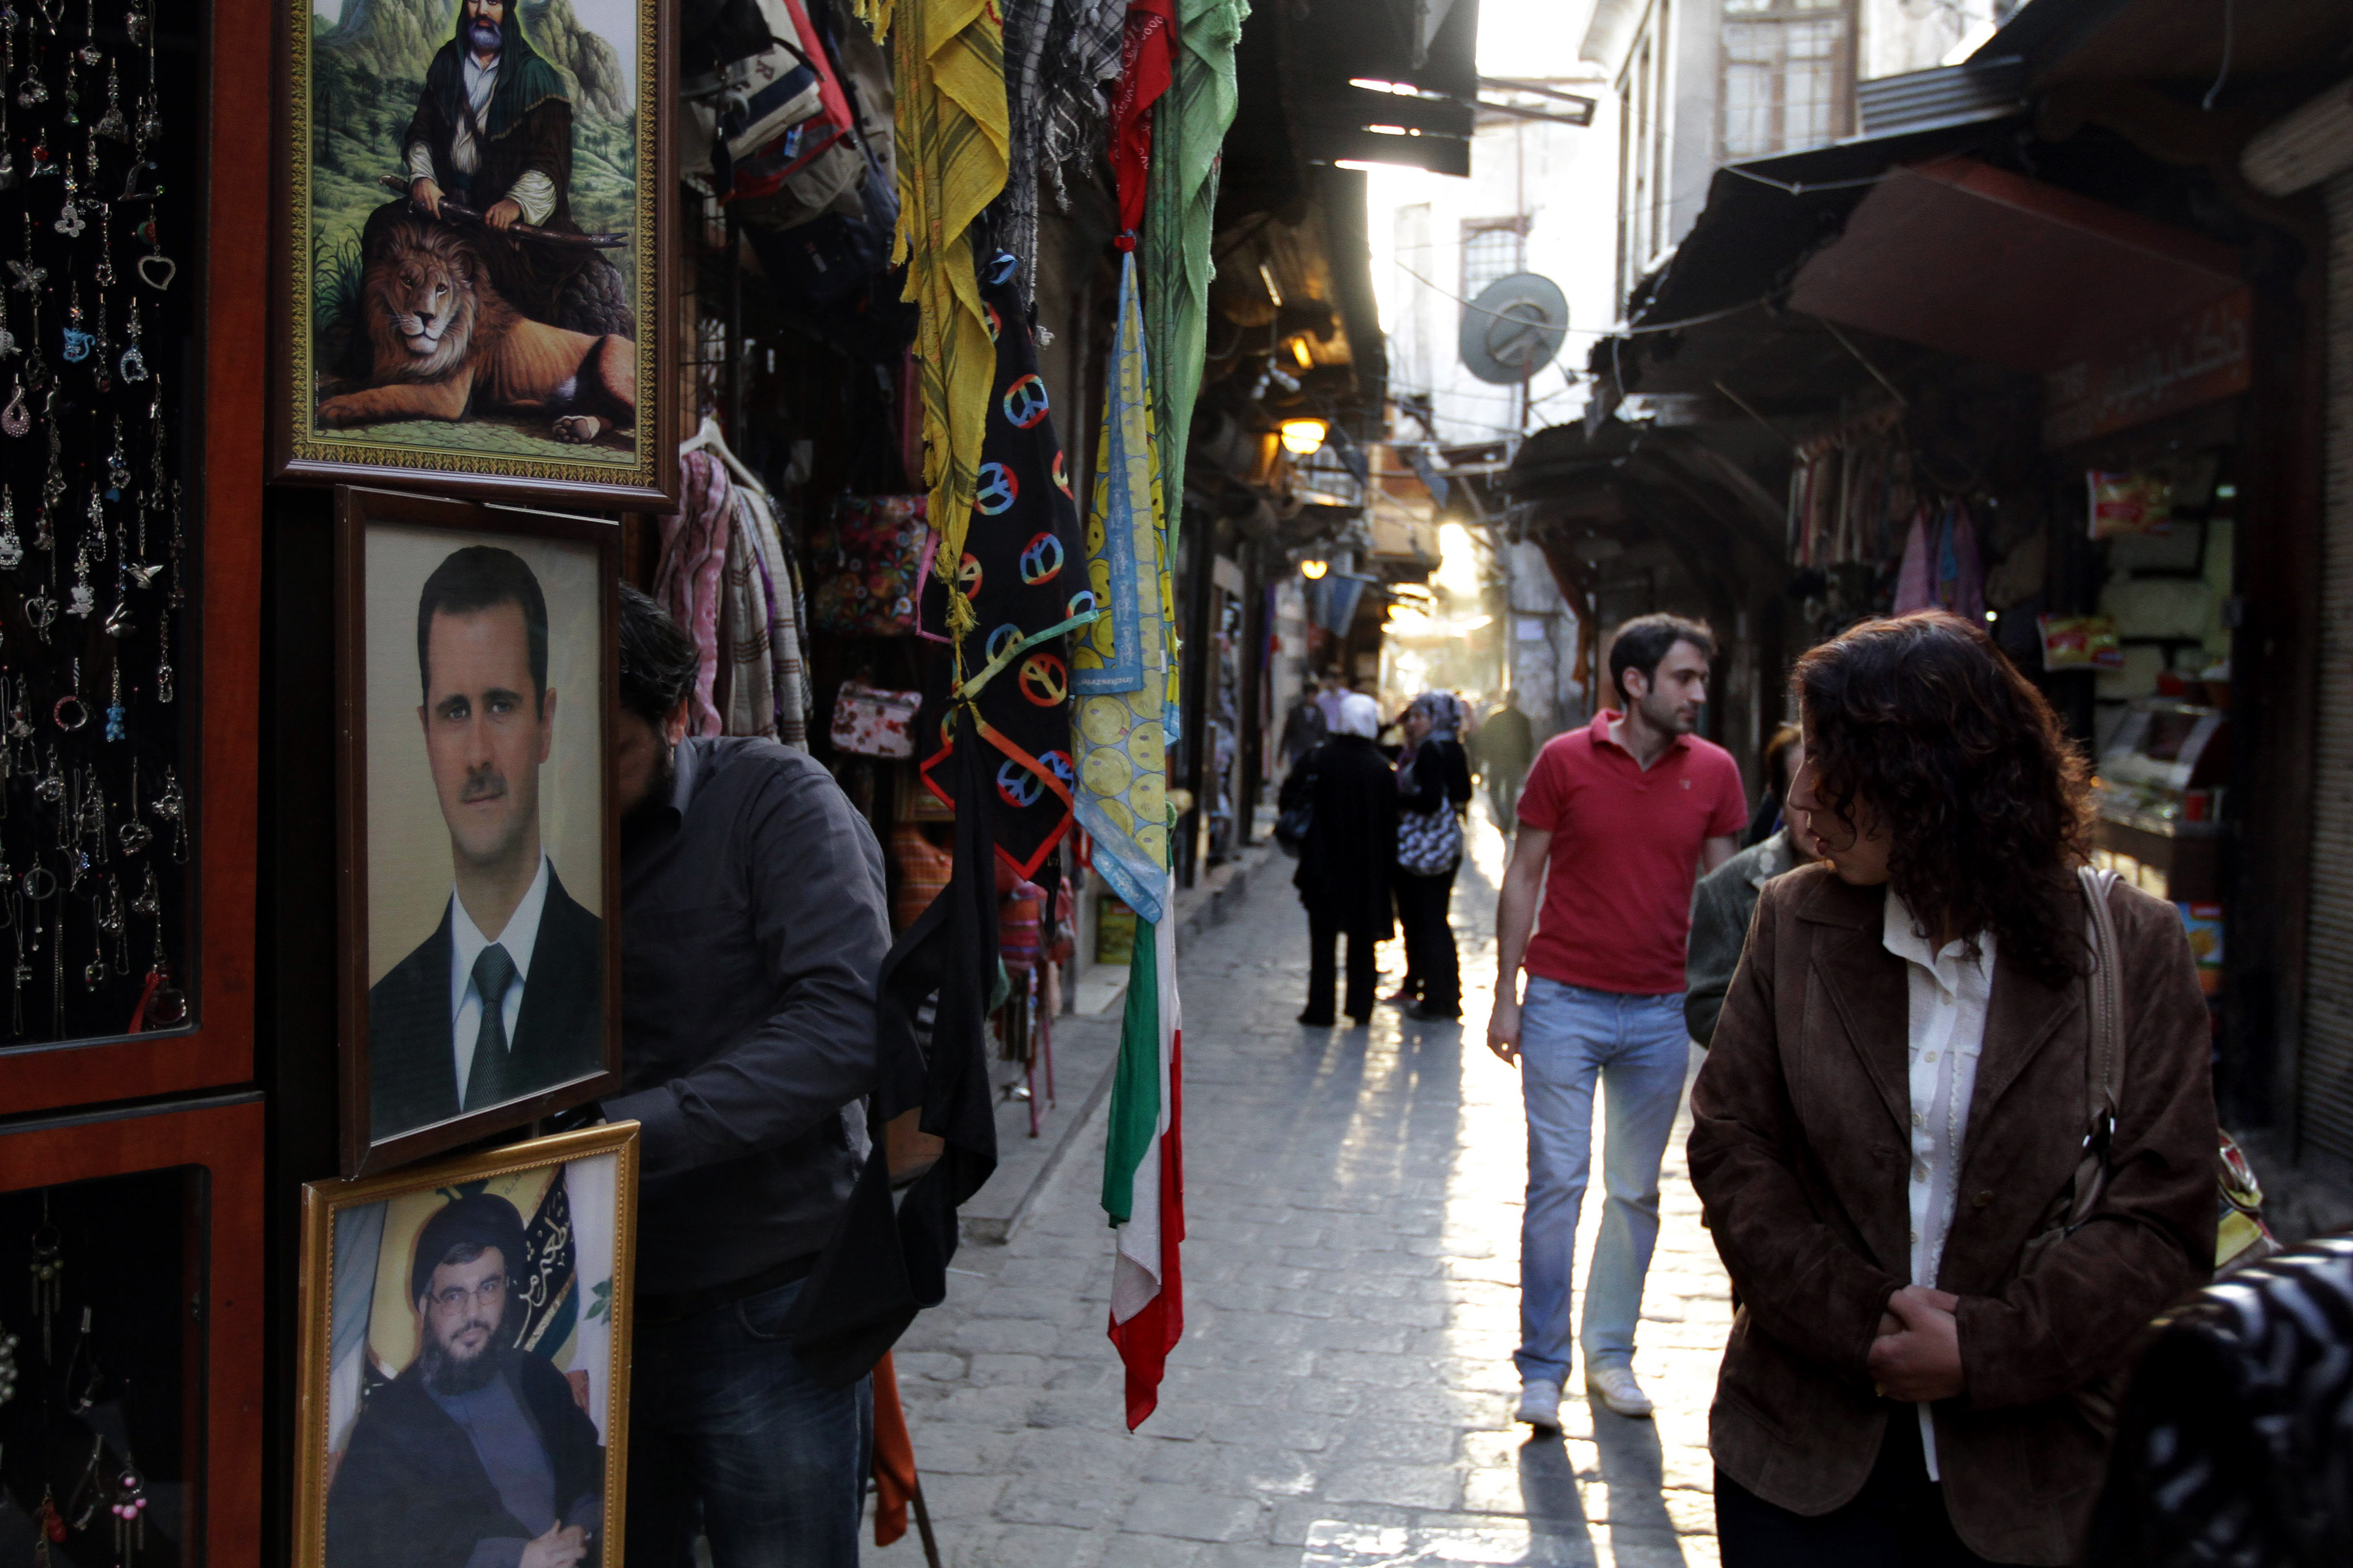 A picture of Syrian President Bashar al-Assad at the entrance of a store at a market in Damascus.